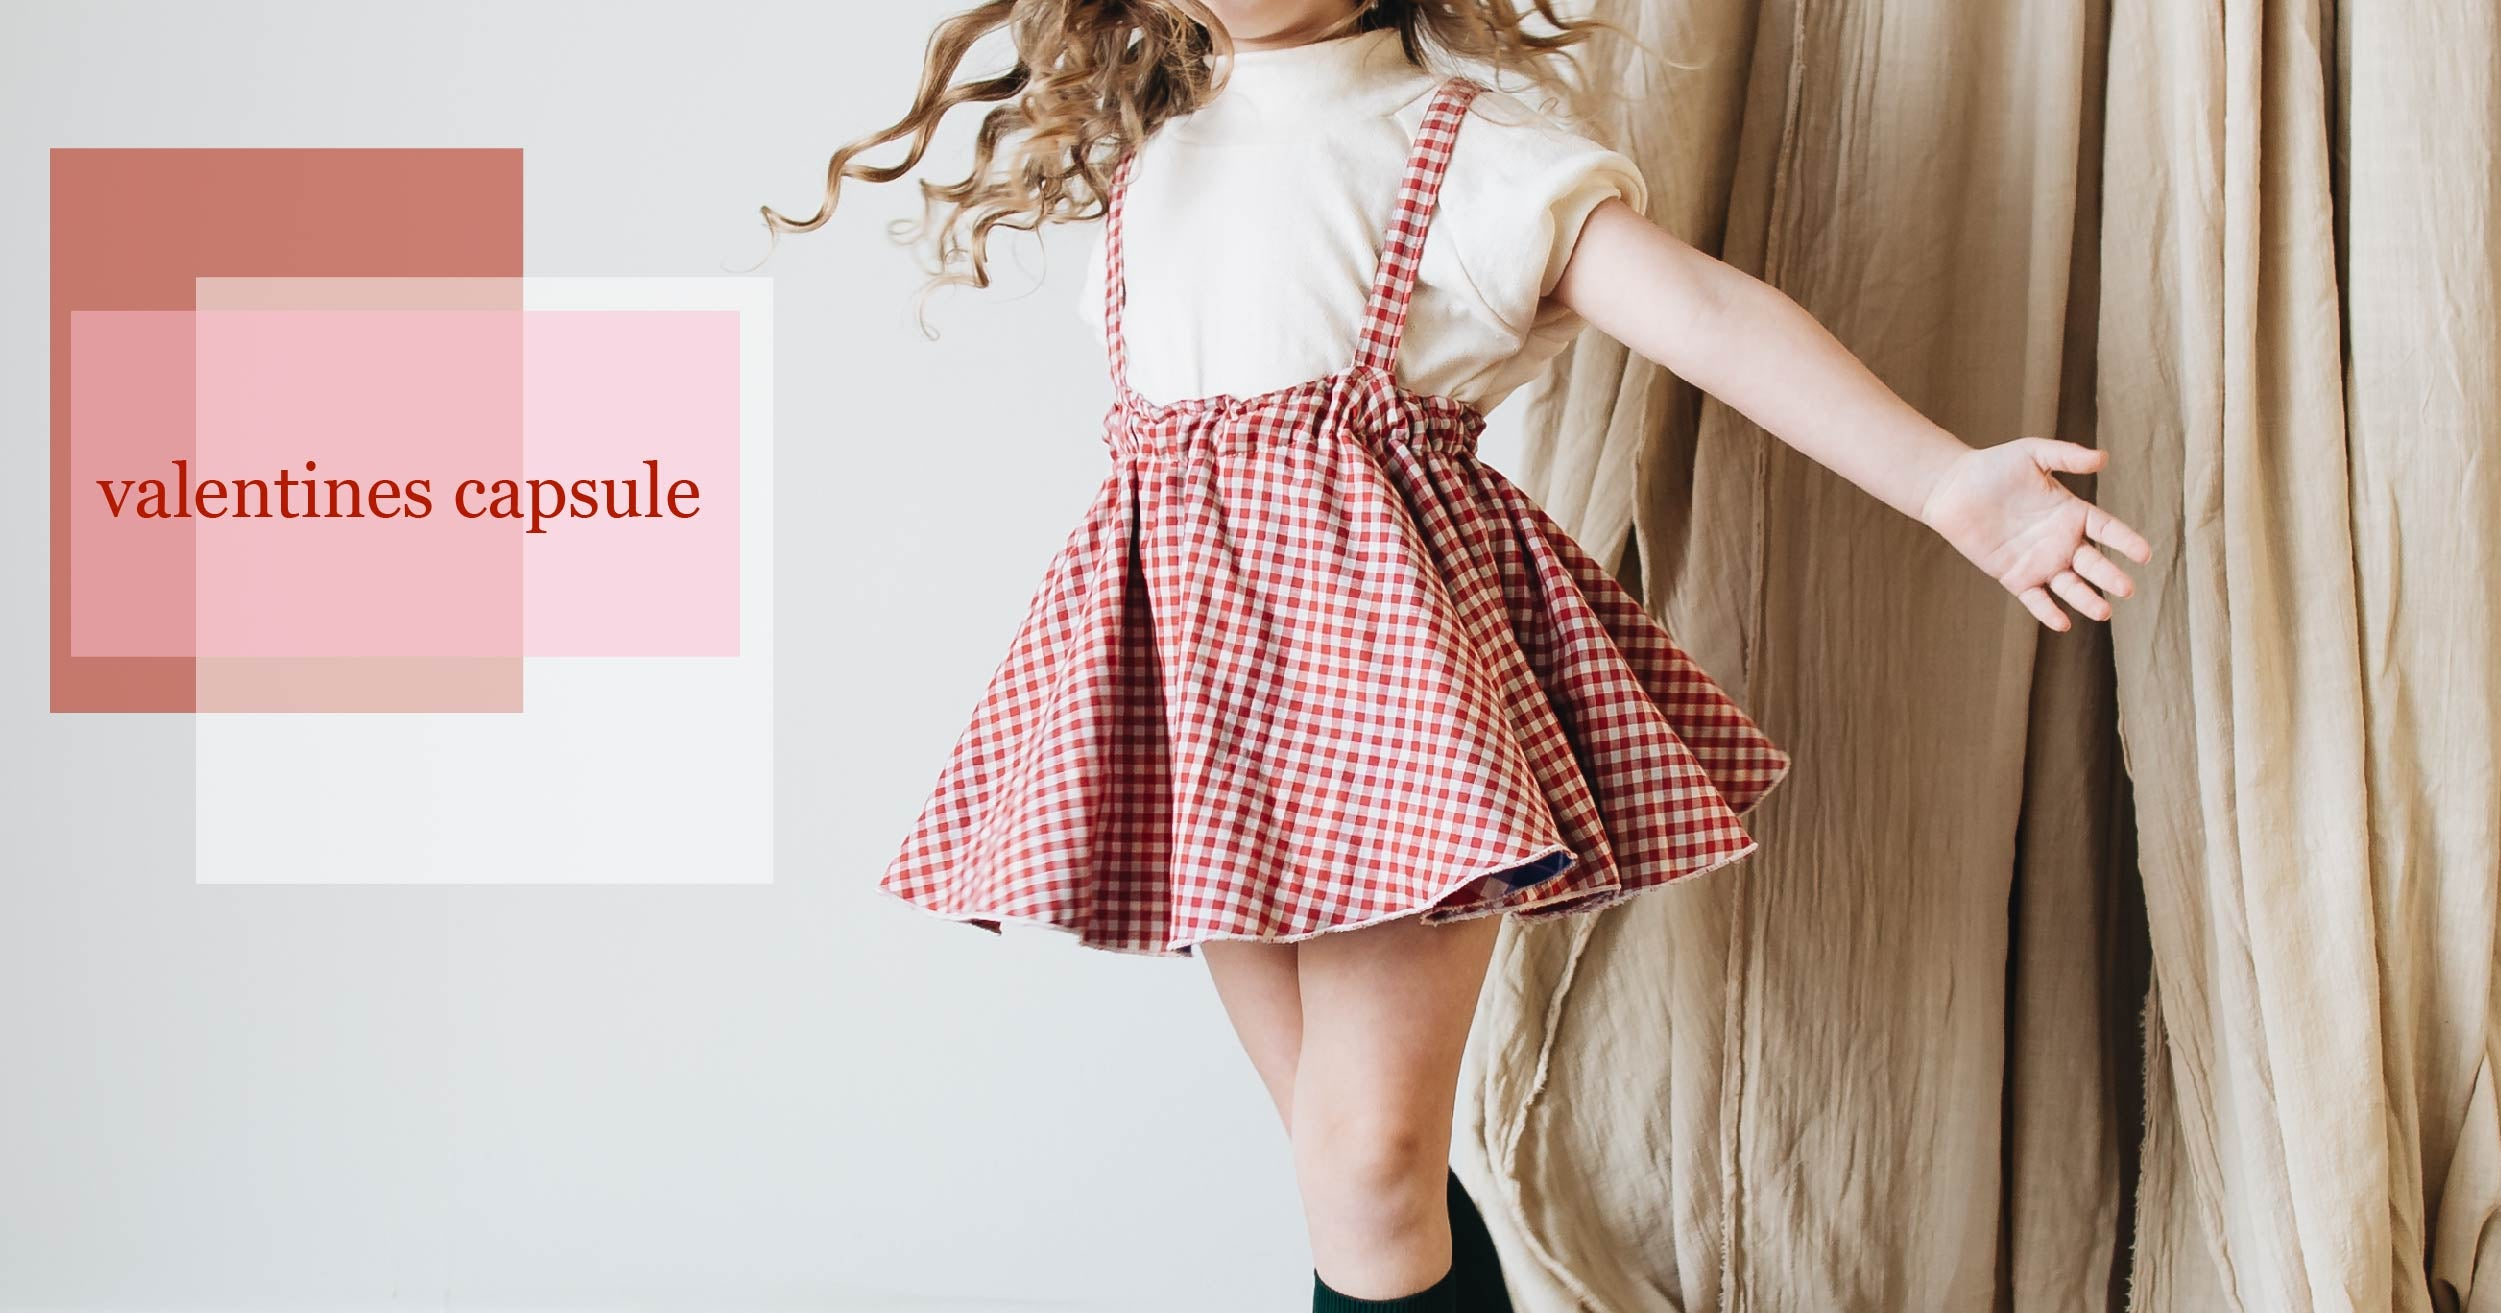 valentines kid clothing capsule collection